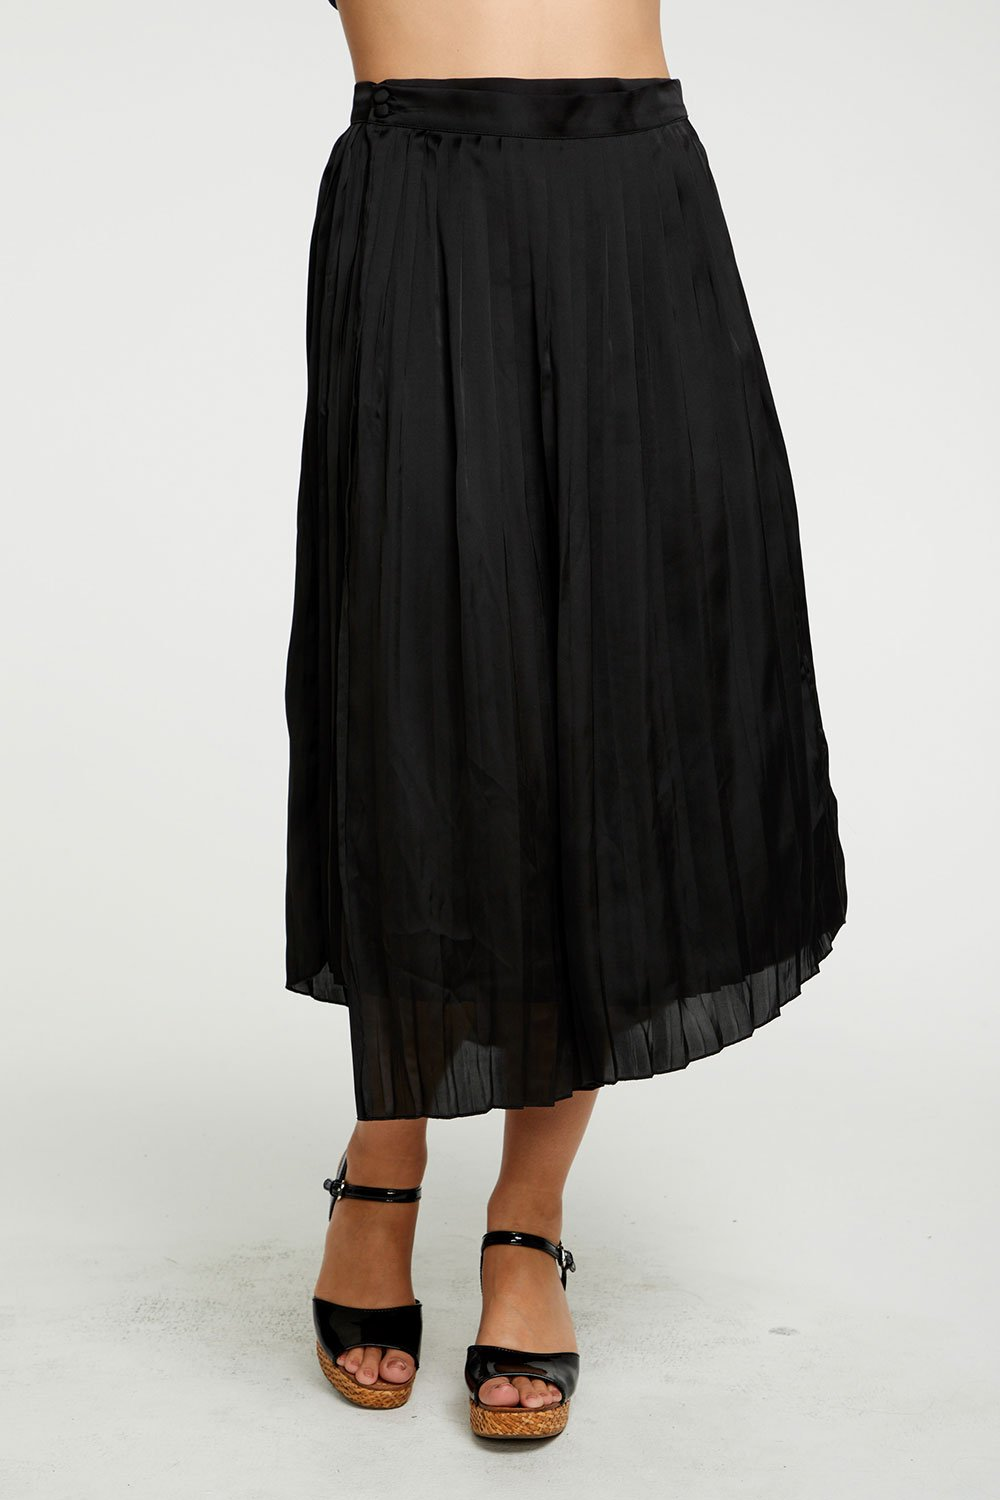 Chaser Silky Basics Pleated Asymmetrical Wrap Midi Skirt - Black